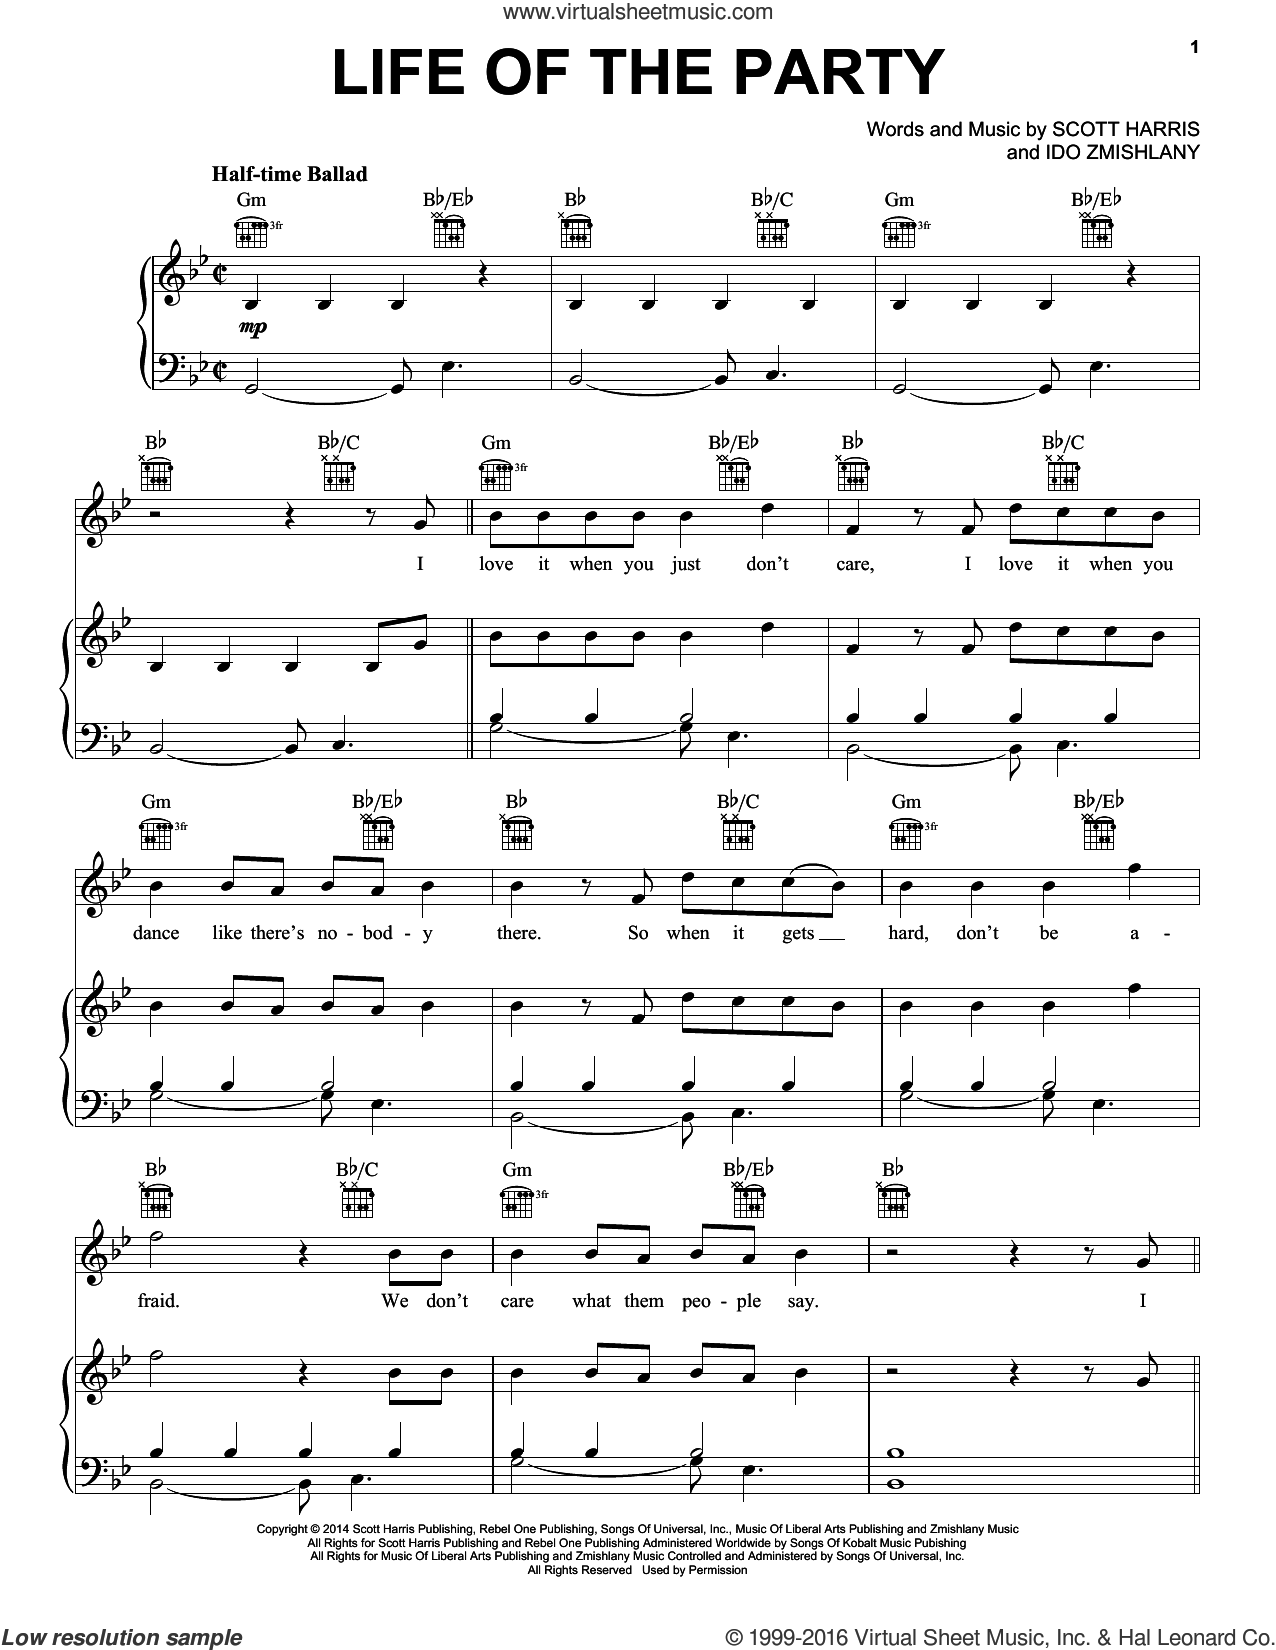 Life Of The Party sheet music for voice, piano or guitar by Shawn Mendes, Ido Zmishlany and Scott Harris, intermediate skill level